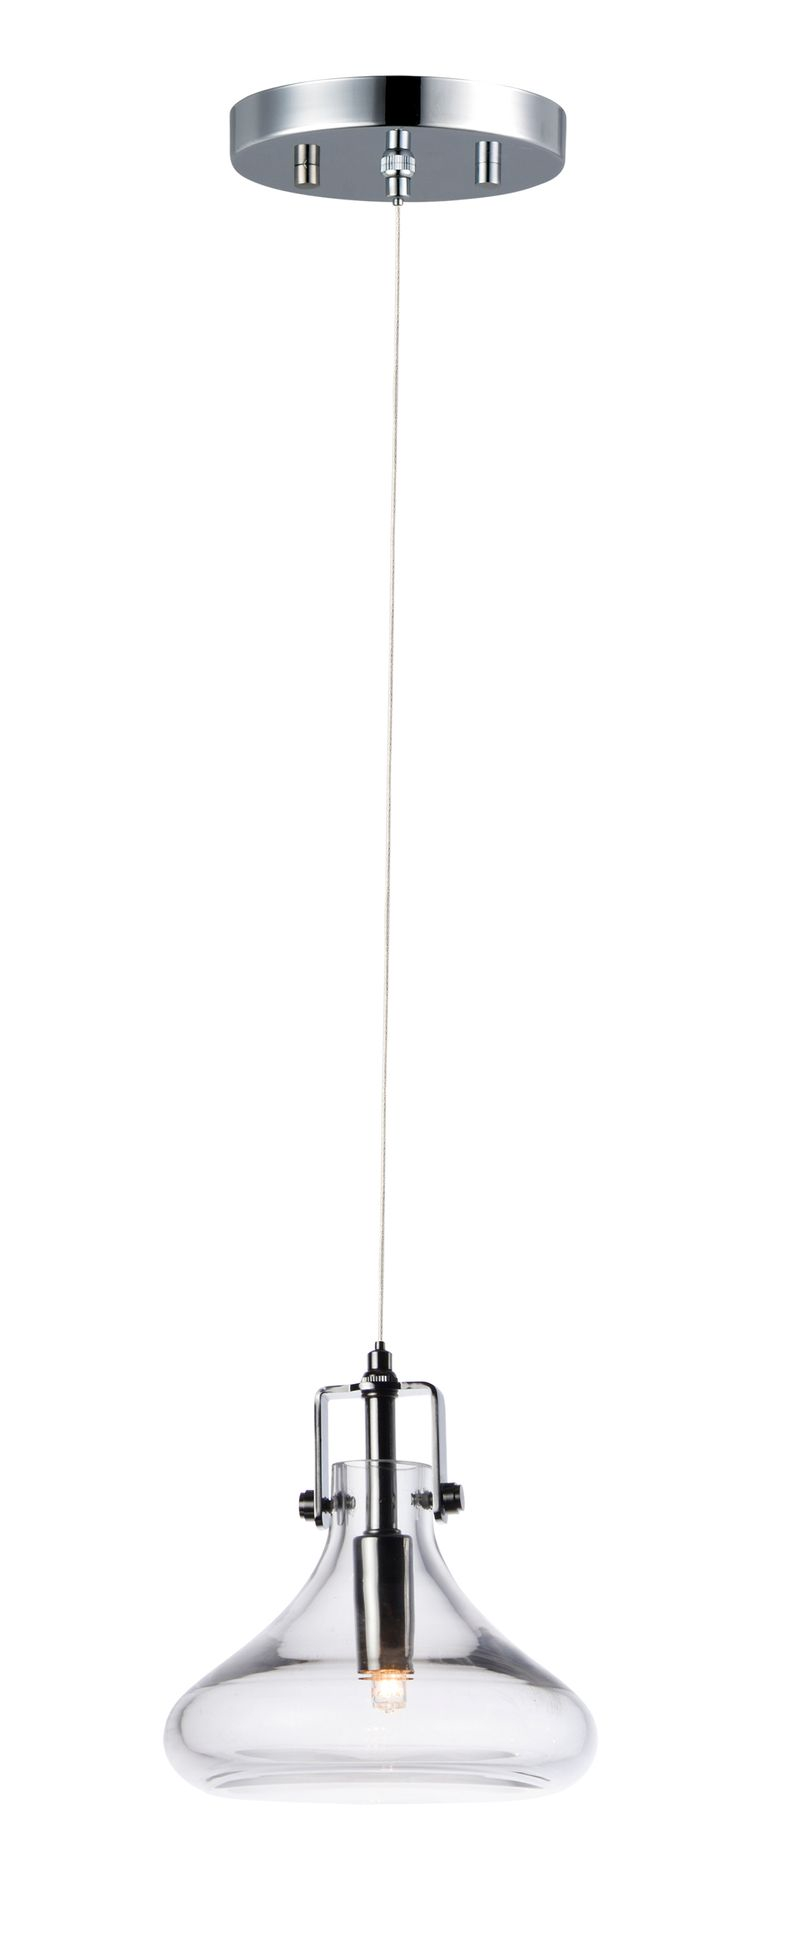 "Kem 6.25"" 1-Light Single Pendant - Polished Chrome"